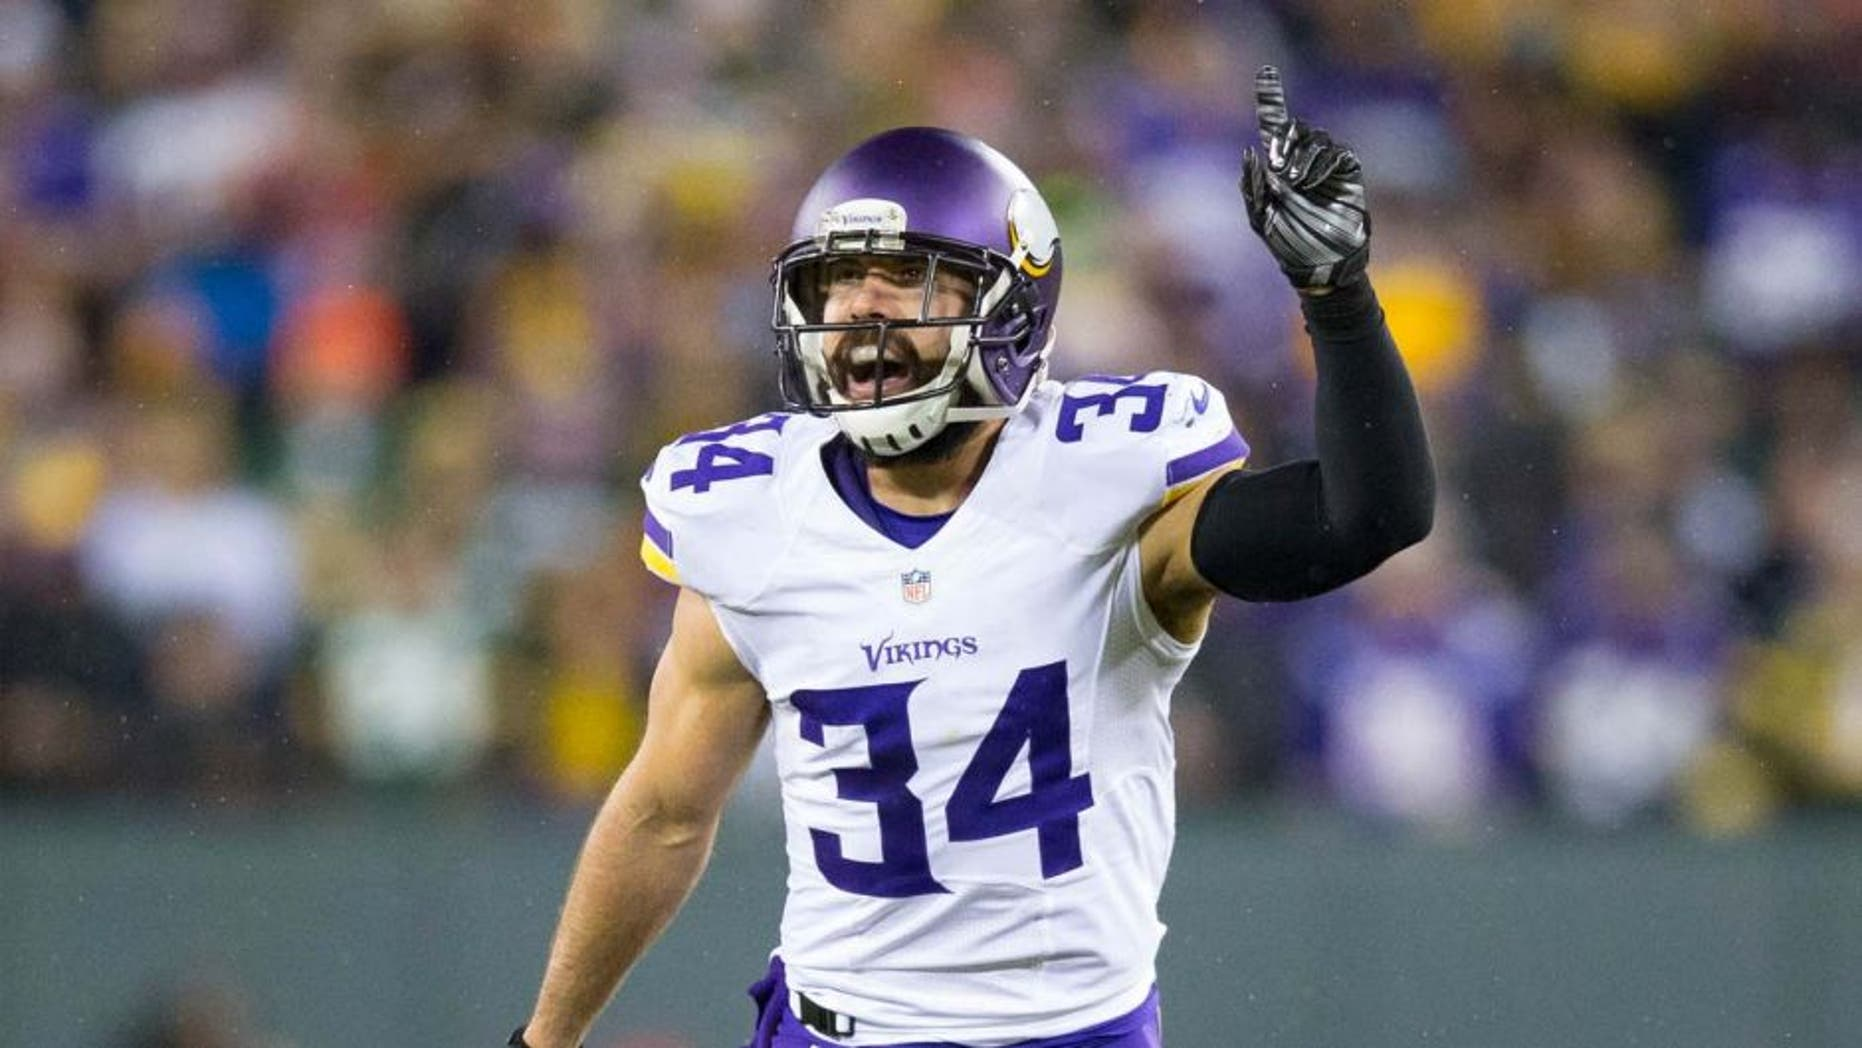 Minnesota Vikings safety Andrew Sendejo celebrates a play during the game against the Green Bay Packers at Lambeau Field in Green Bay, Wis., on Jan. 3, 2016.